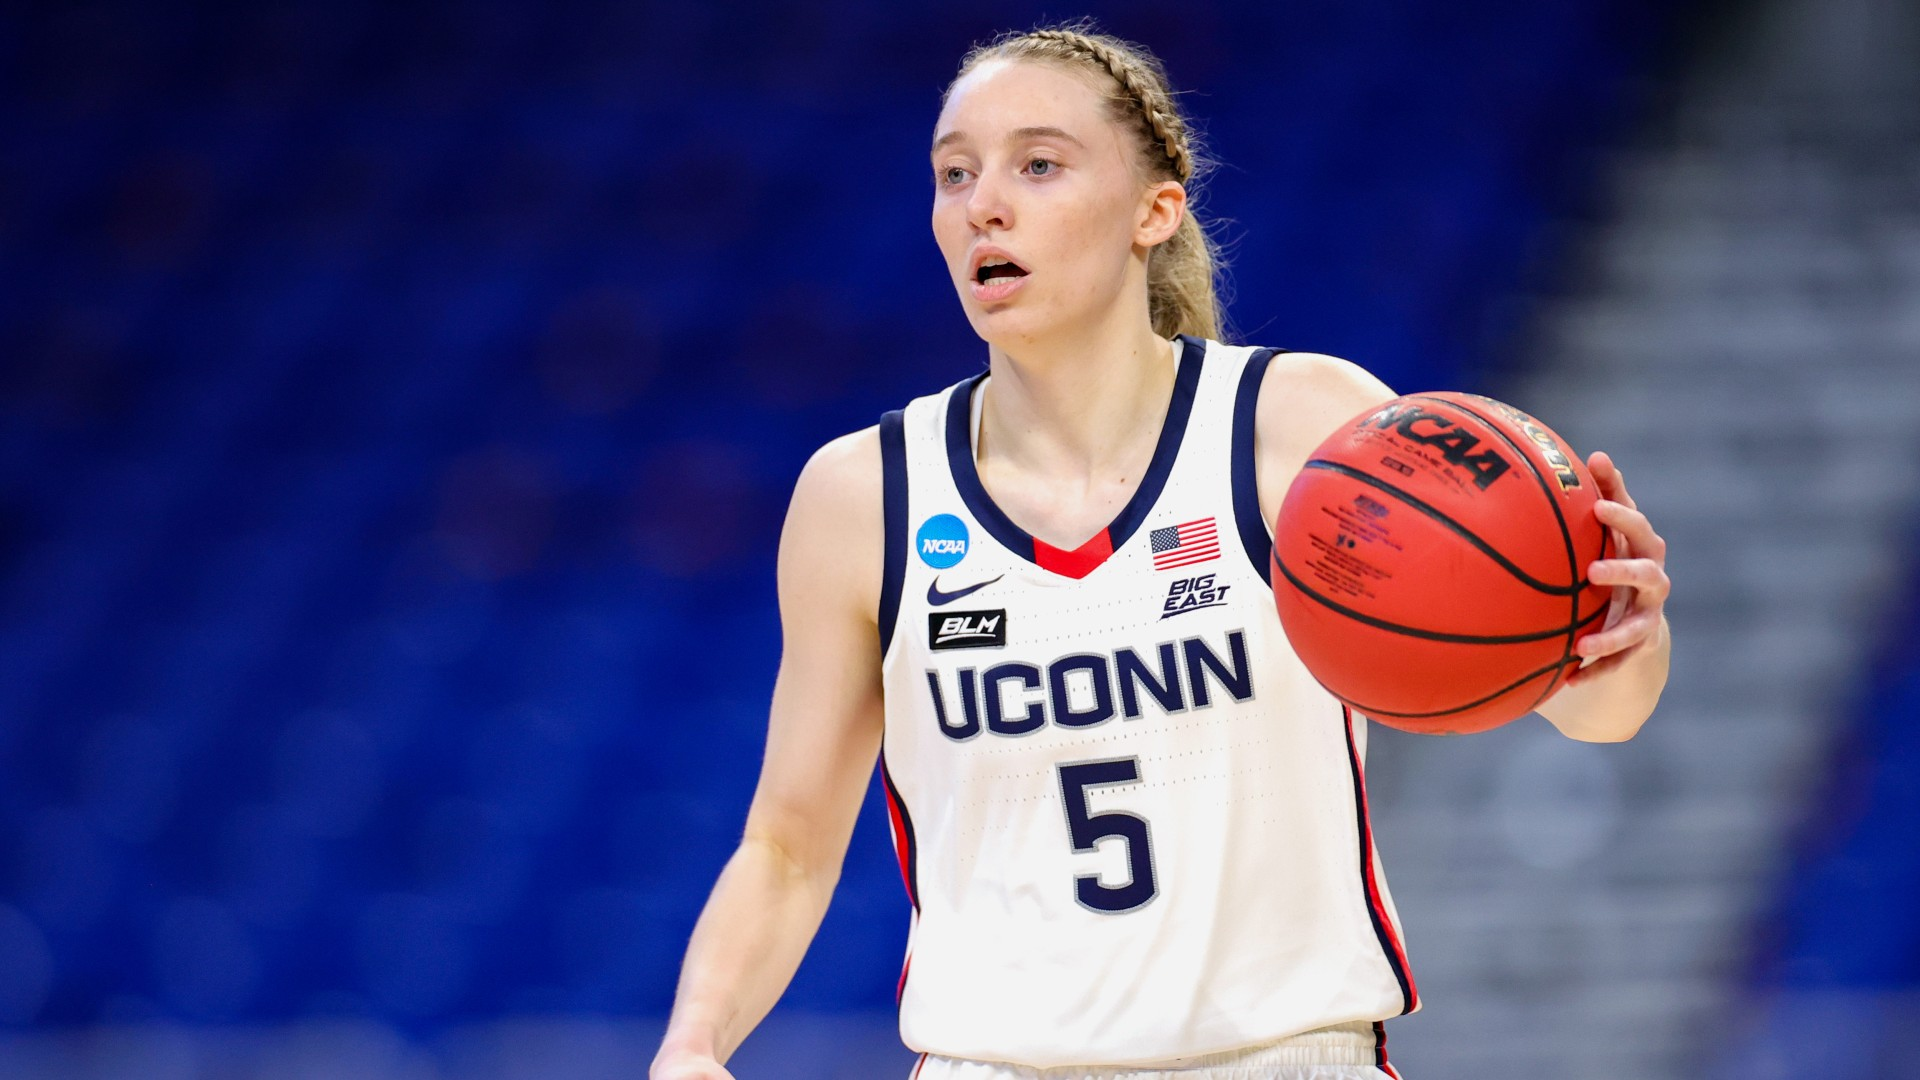 Why UConn star Paige Bueckers is not eligible for the 2021 WNBA draft